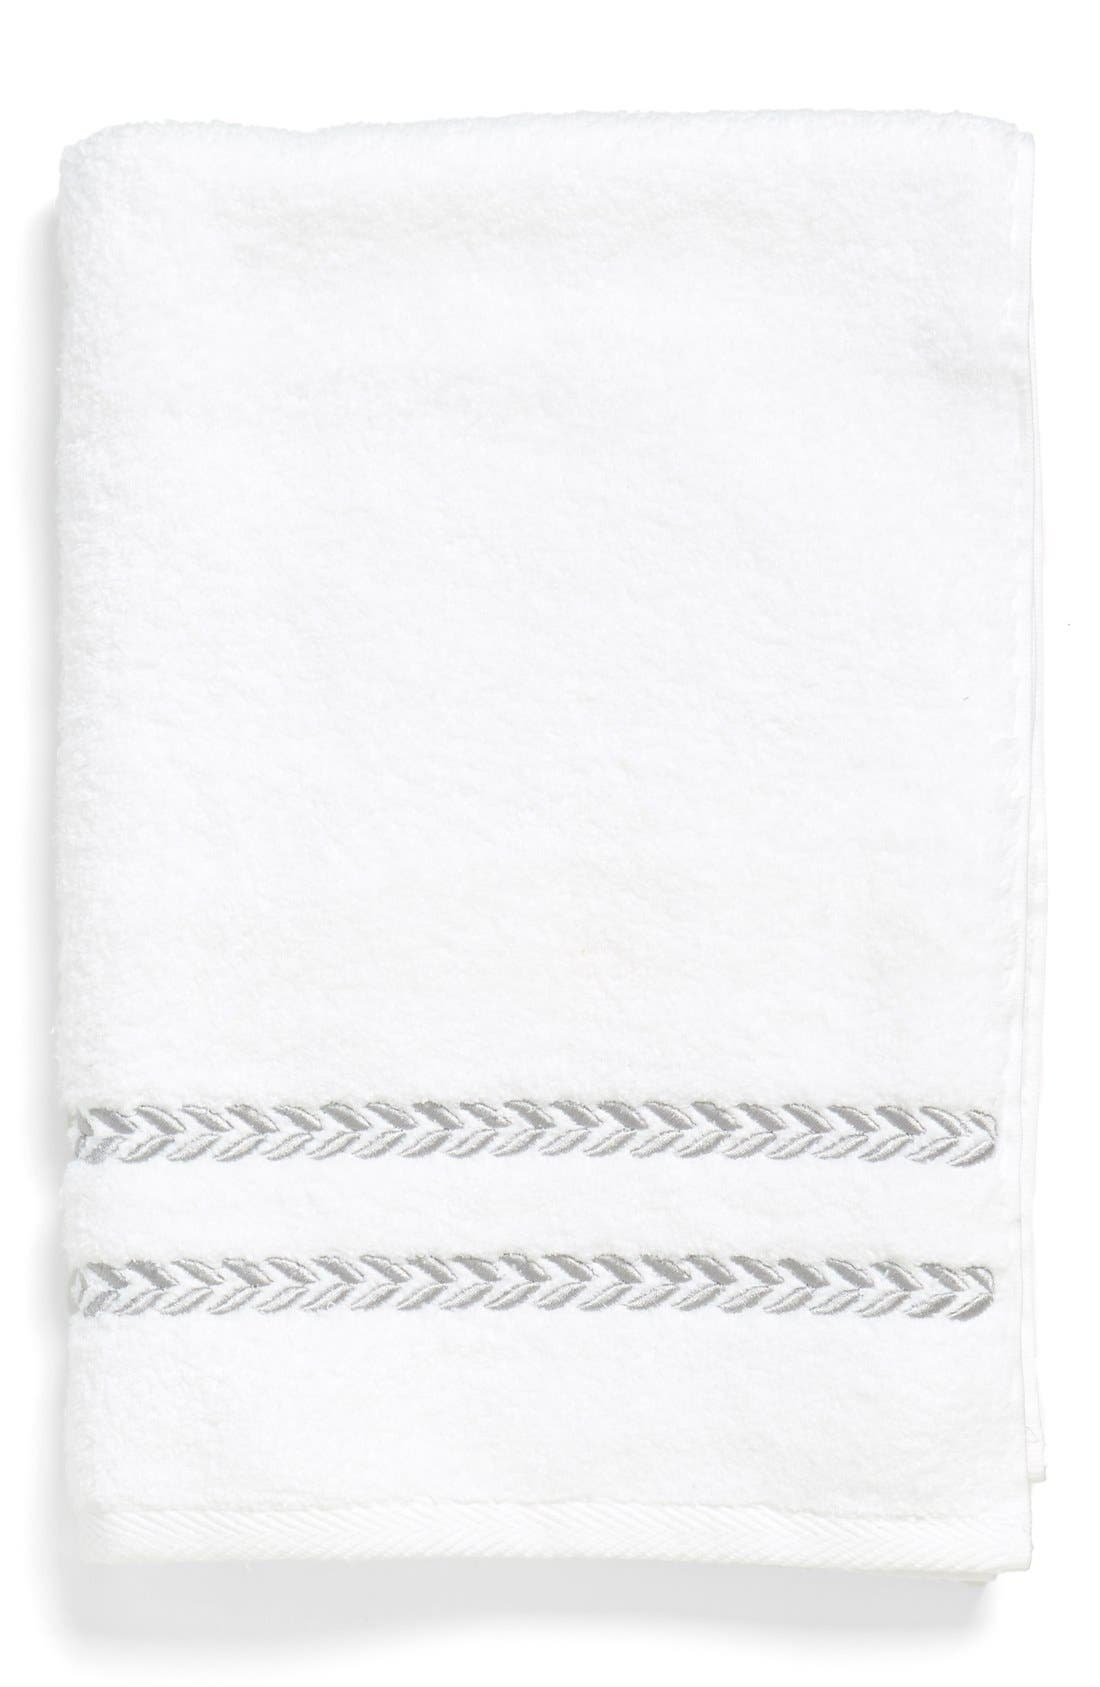 DENA HOME 'Pearl Essence' Hand Towel